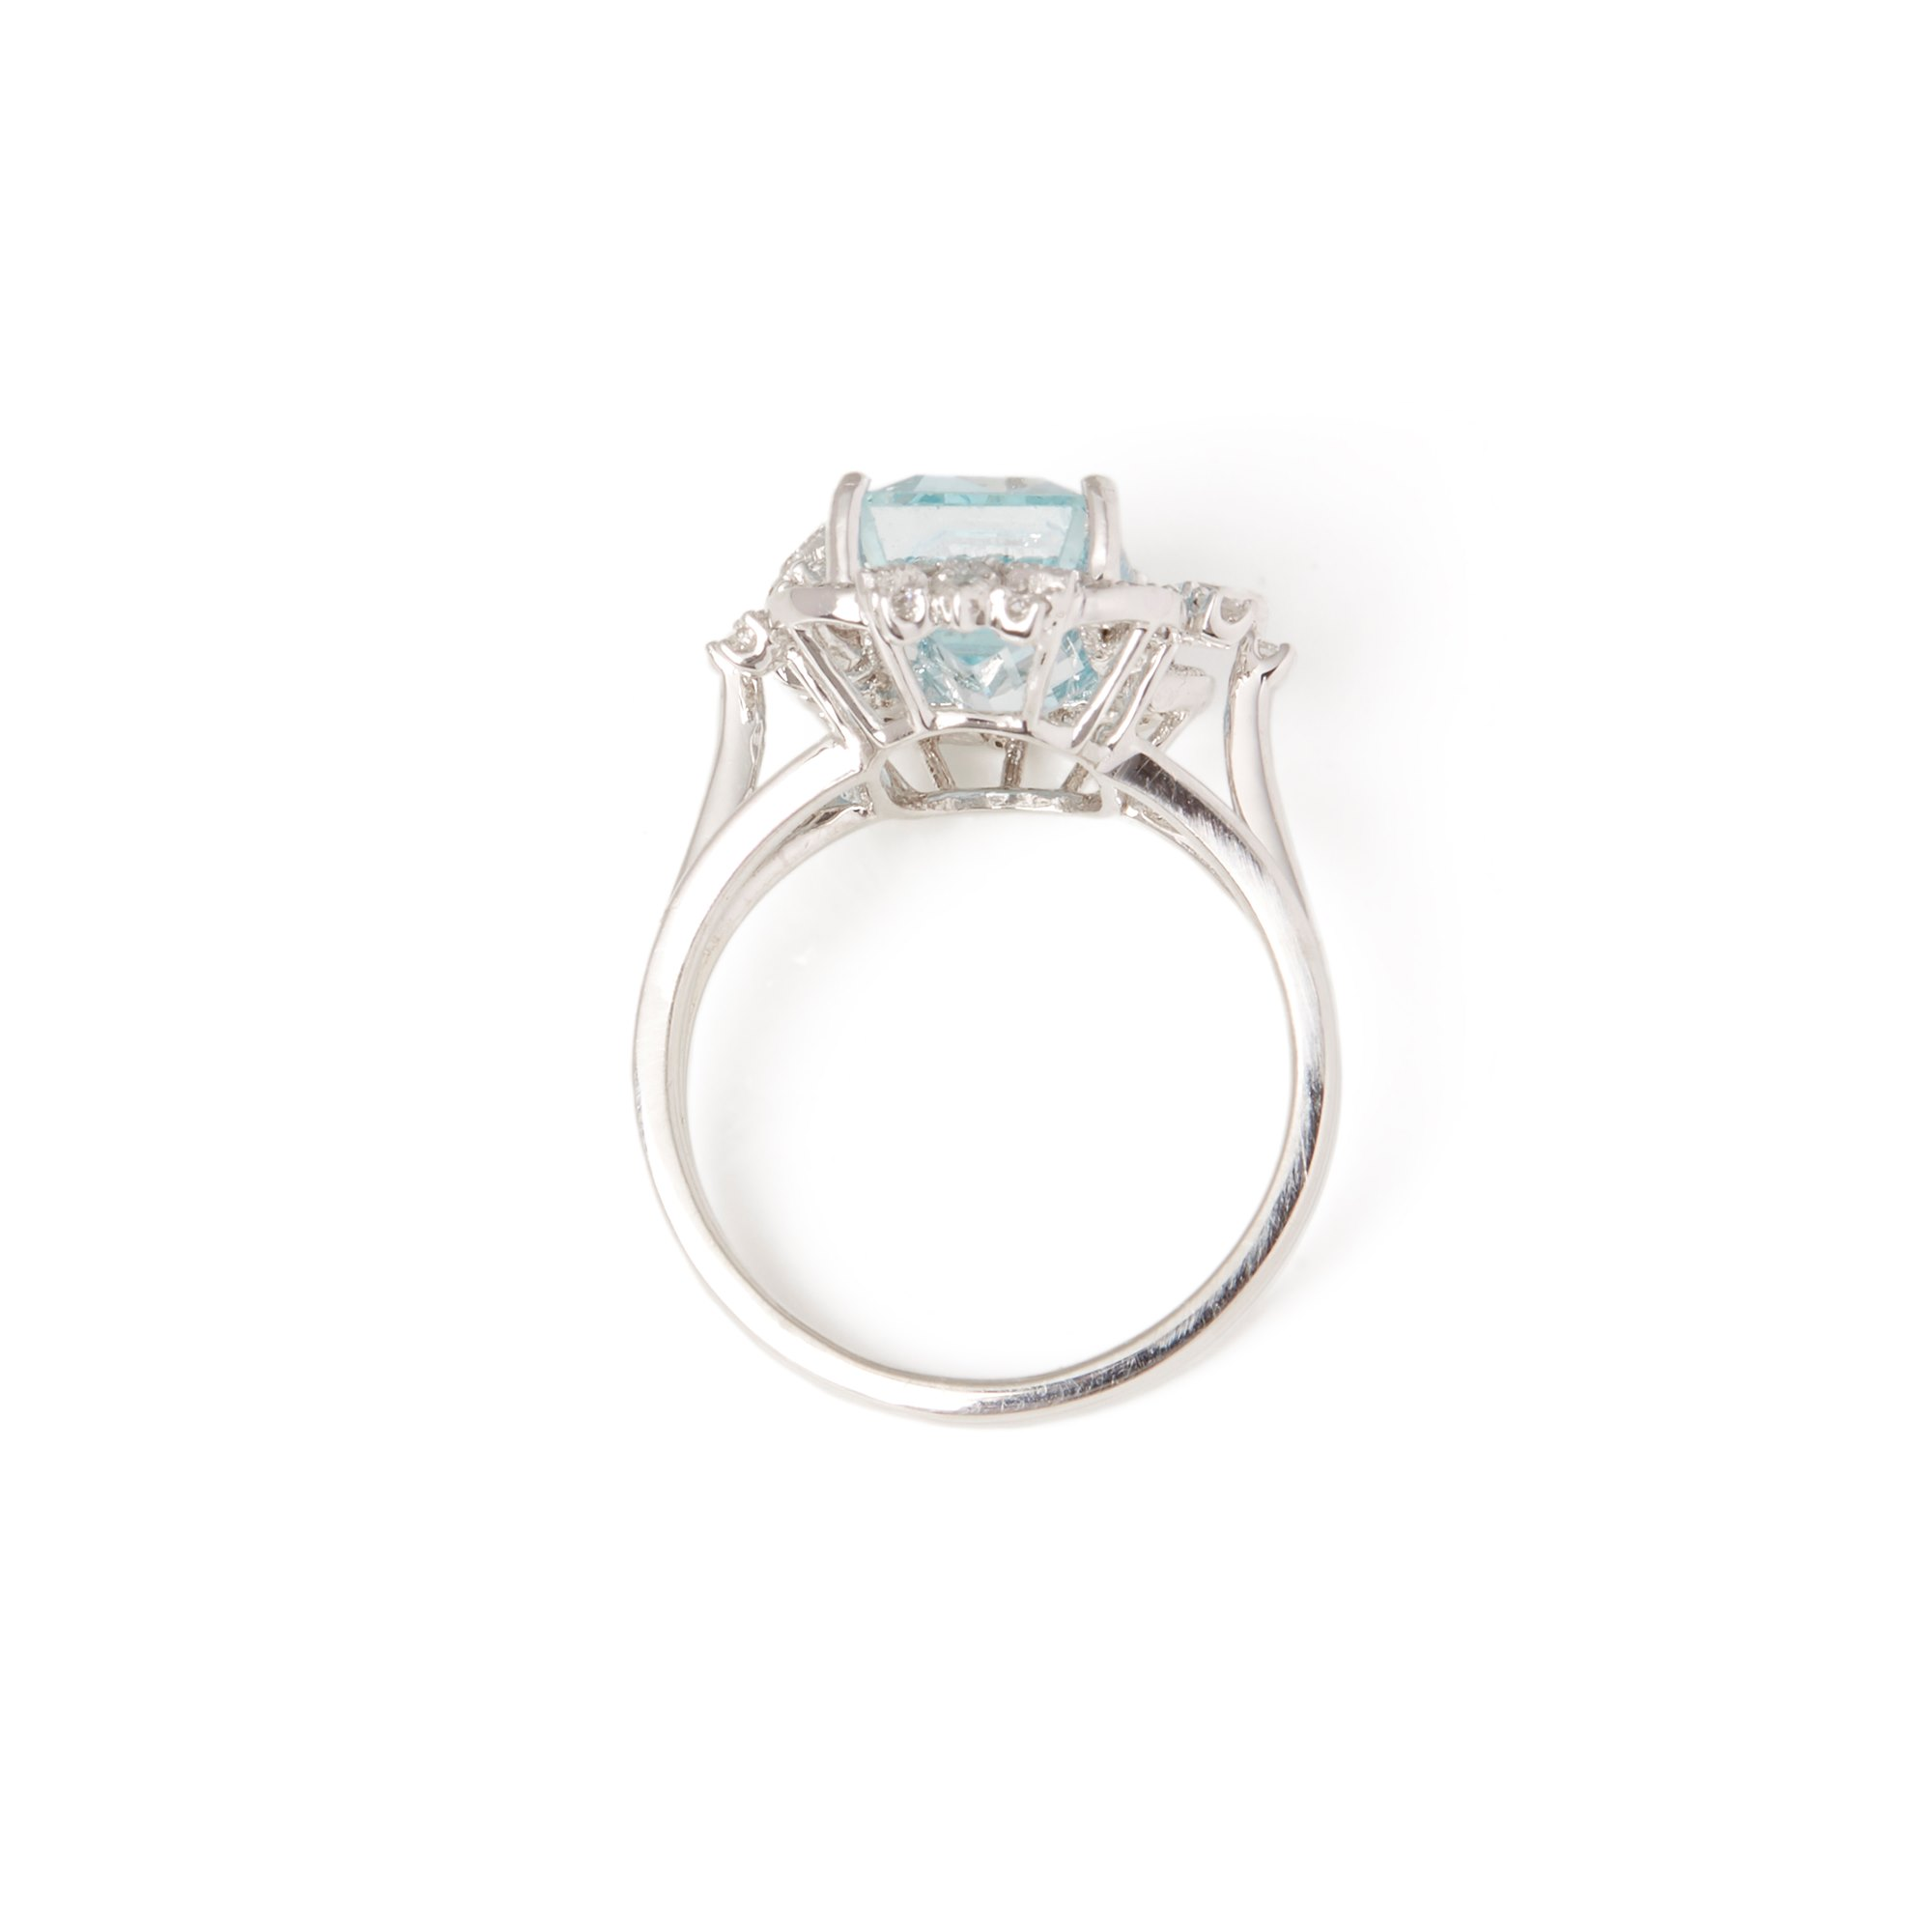 David Jerome Platinum Aquamarine and Diamond Ring